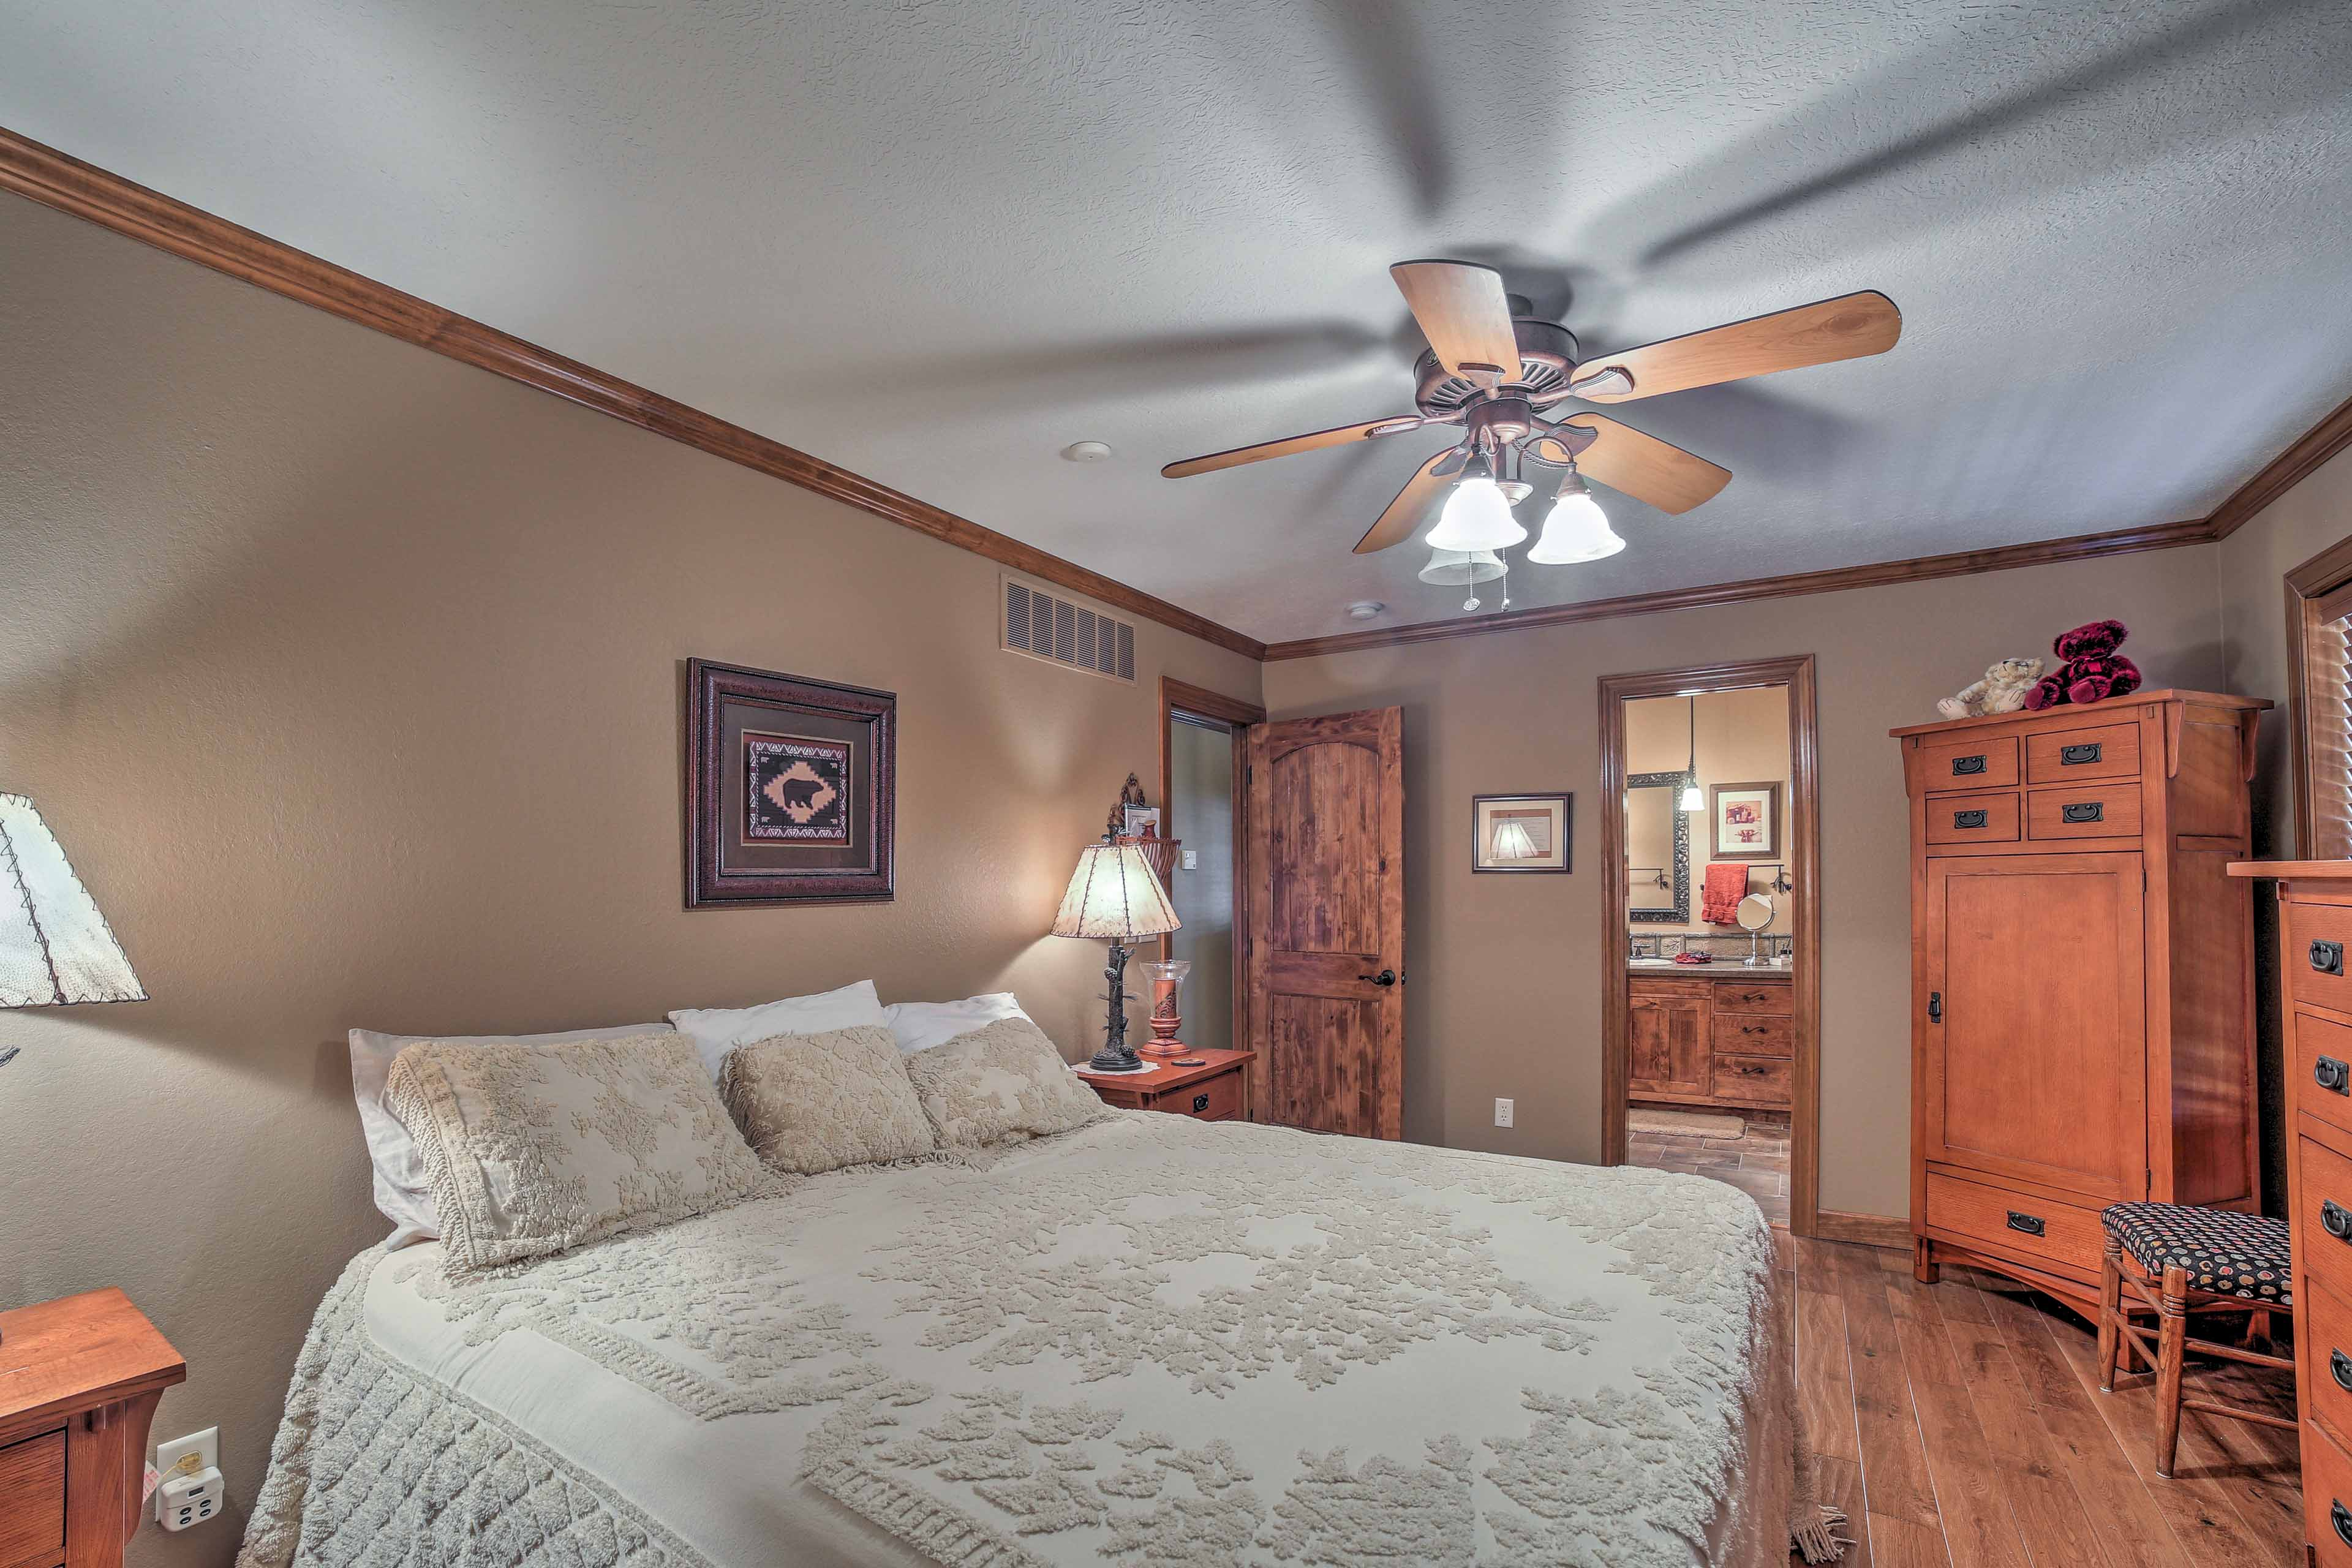 Wood furnishings make the bedroom homey and inviting, with space to unpack.